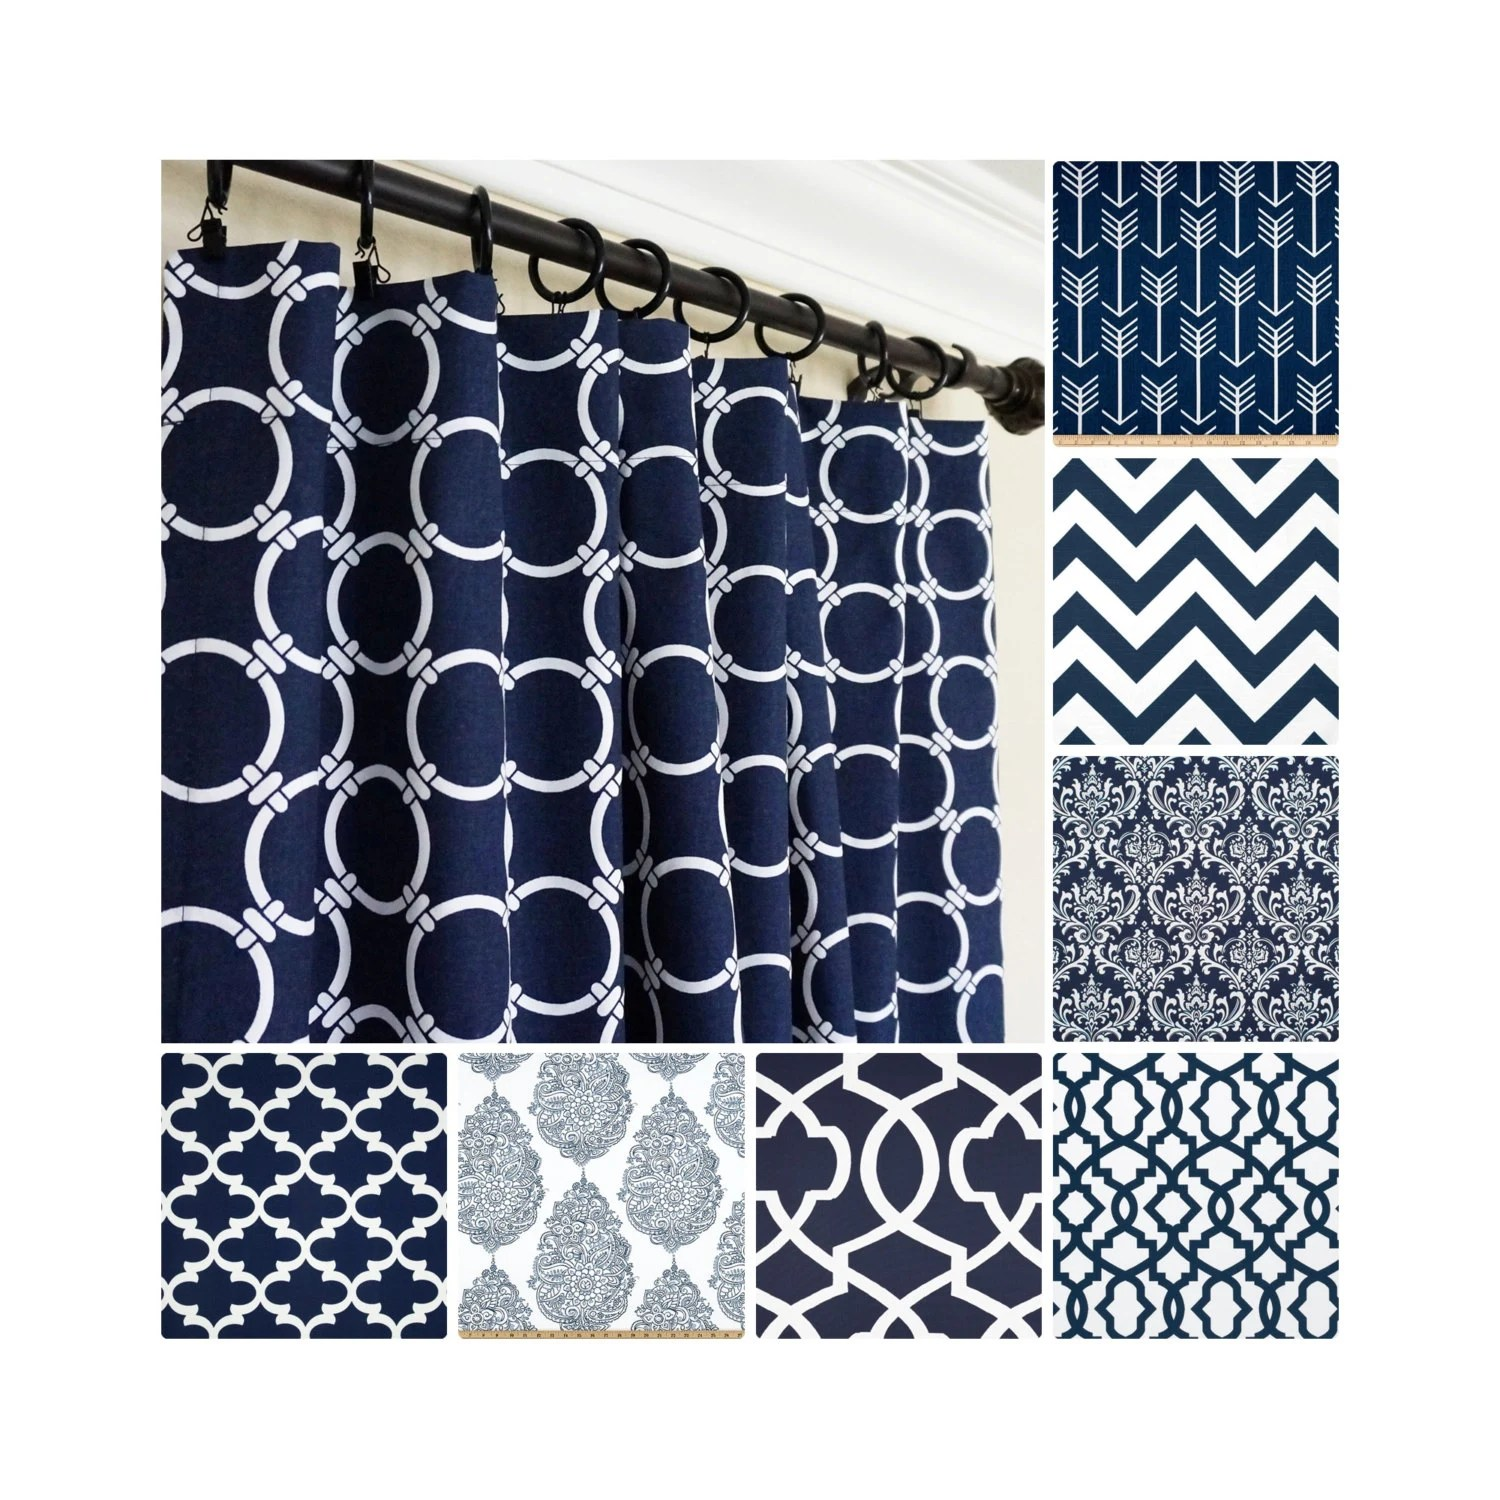 Dark Blue And Grey Curtains Navy Blue Curtains Navy Window Curtains Dark Blue Curtains Kitchen Curtains Moroccan Curtains Blue Arrow Curtains Choose Colors